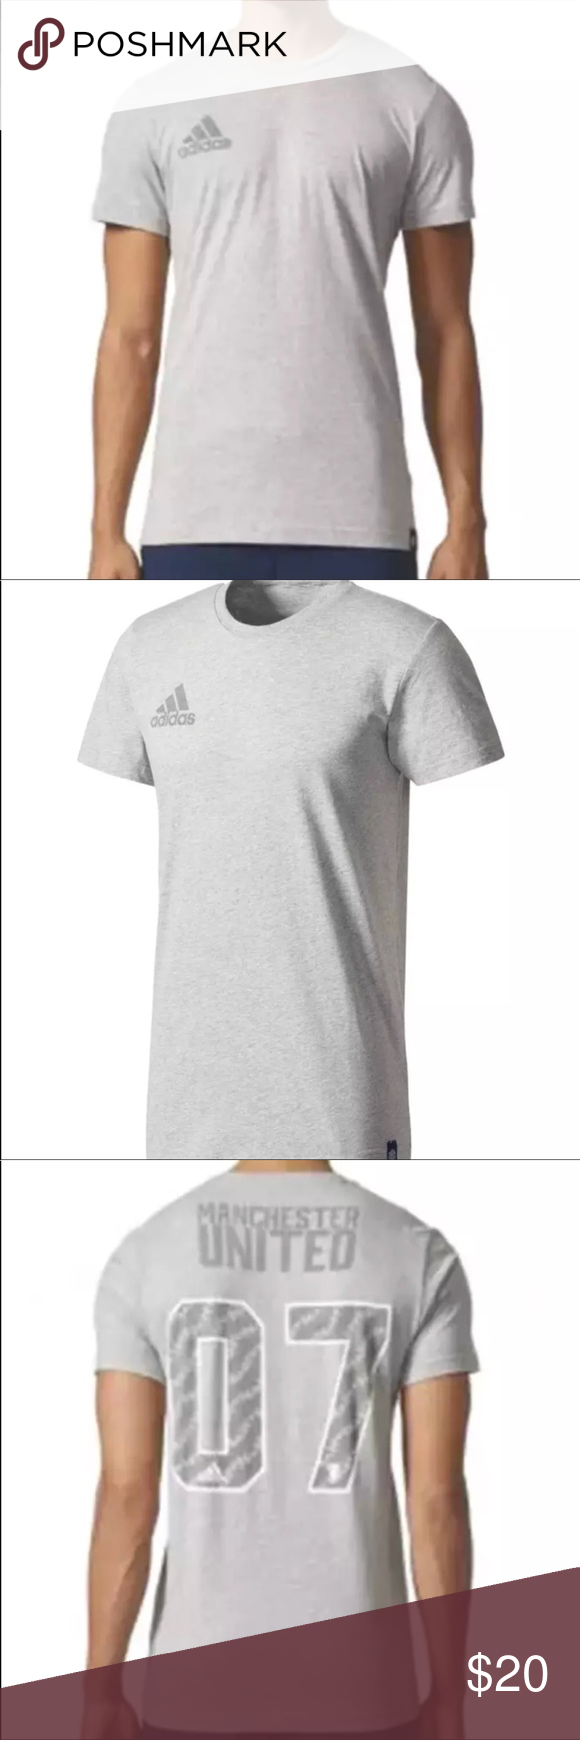 ⚽️ Adidas man t-shirts Manchester Adidas man Manchester t-shirts size L  You love to show off your loyalty for the Manchester United and want to look your absolute best while you're doing it this Manchester United team t shirts from Adidas is the perfect piece of gear for you adidas Shirts Tees - Short Sleeve